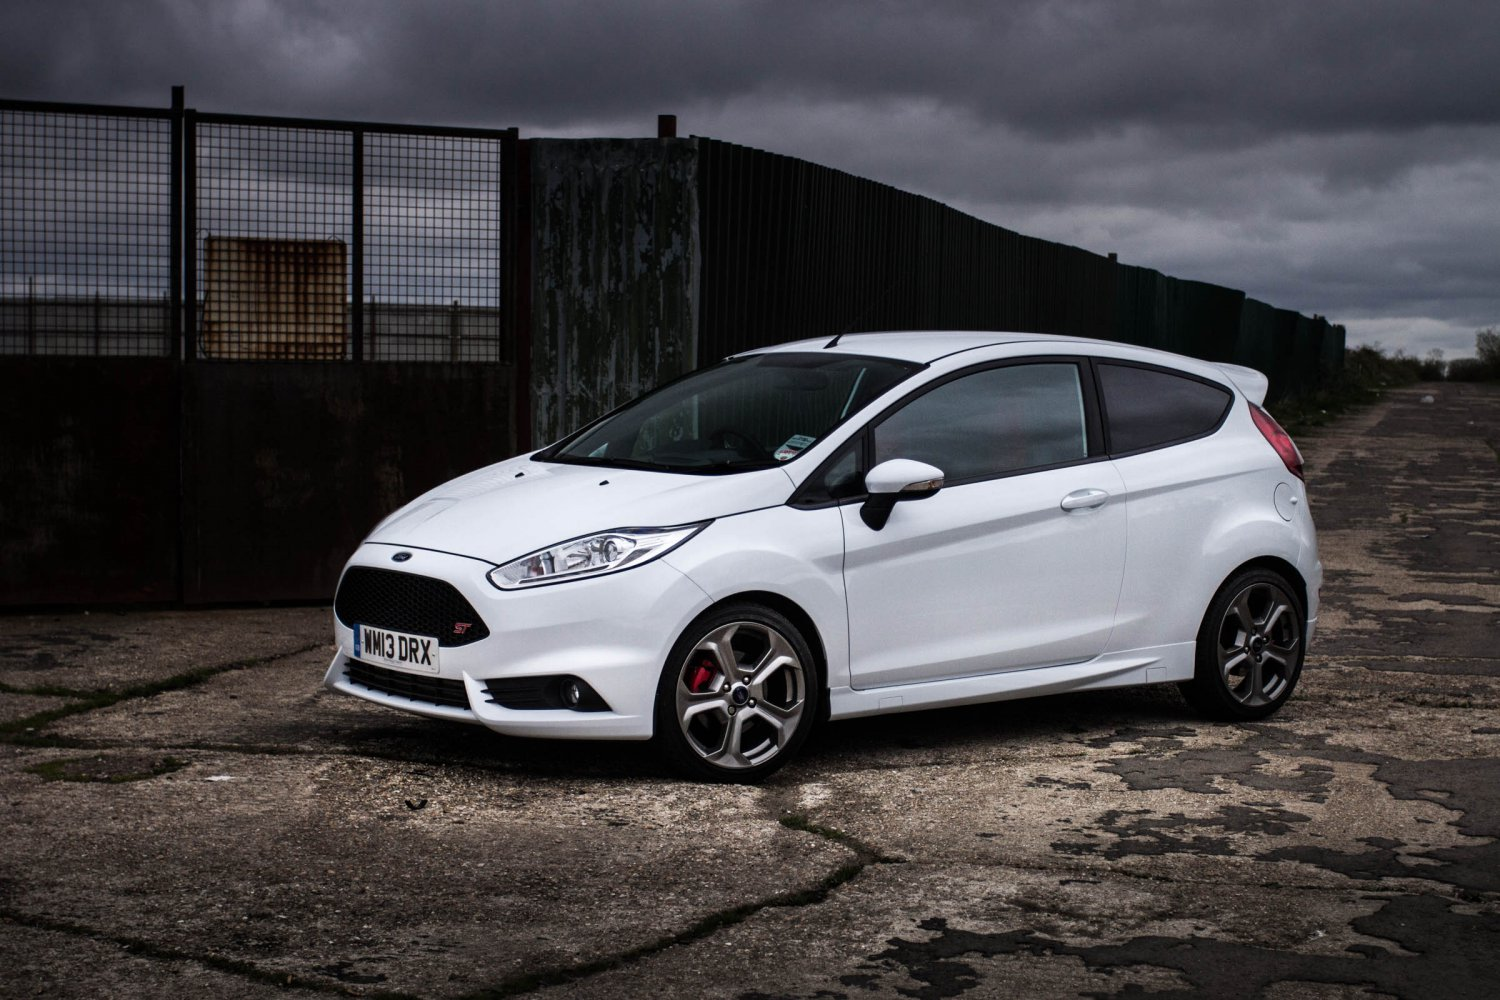 FIESTA ST MK7 PASSIVE IMMOBILISER (EU) - With Automatic Proximity Fob